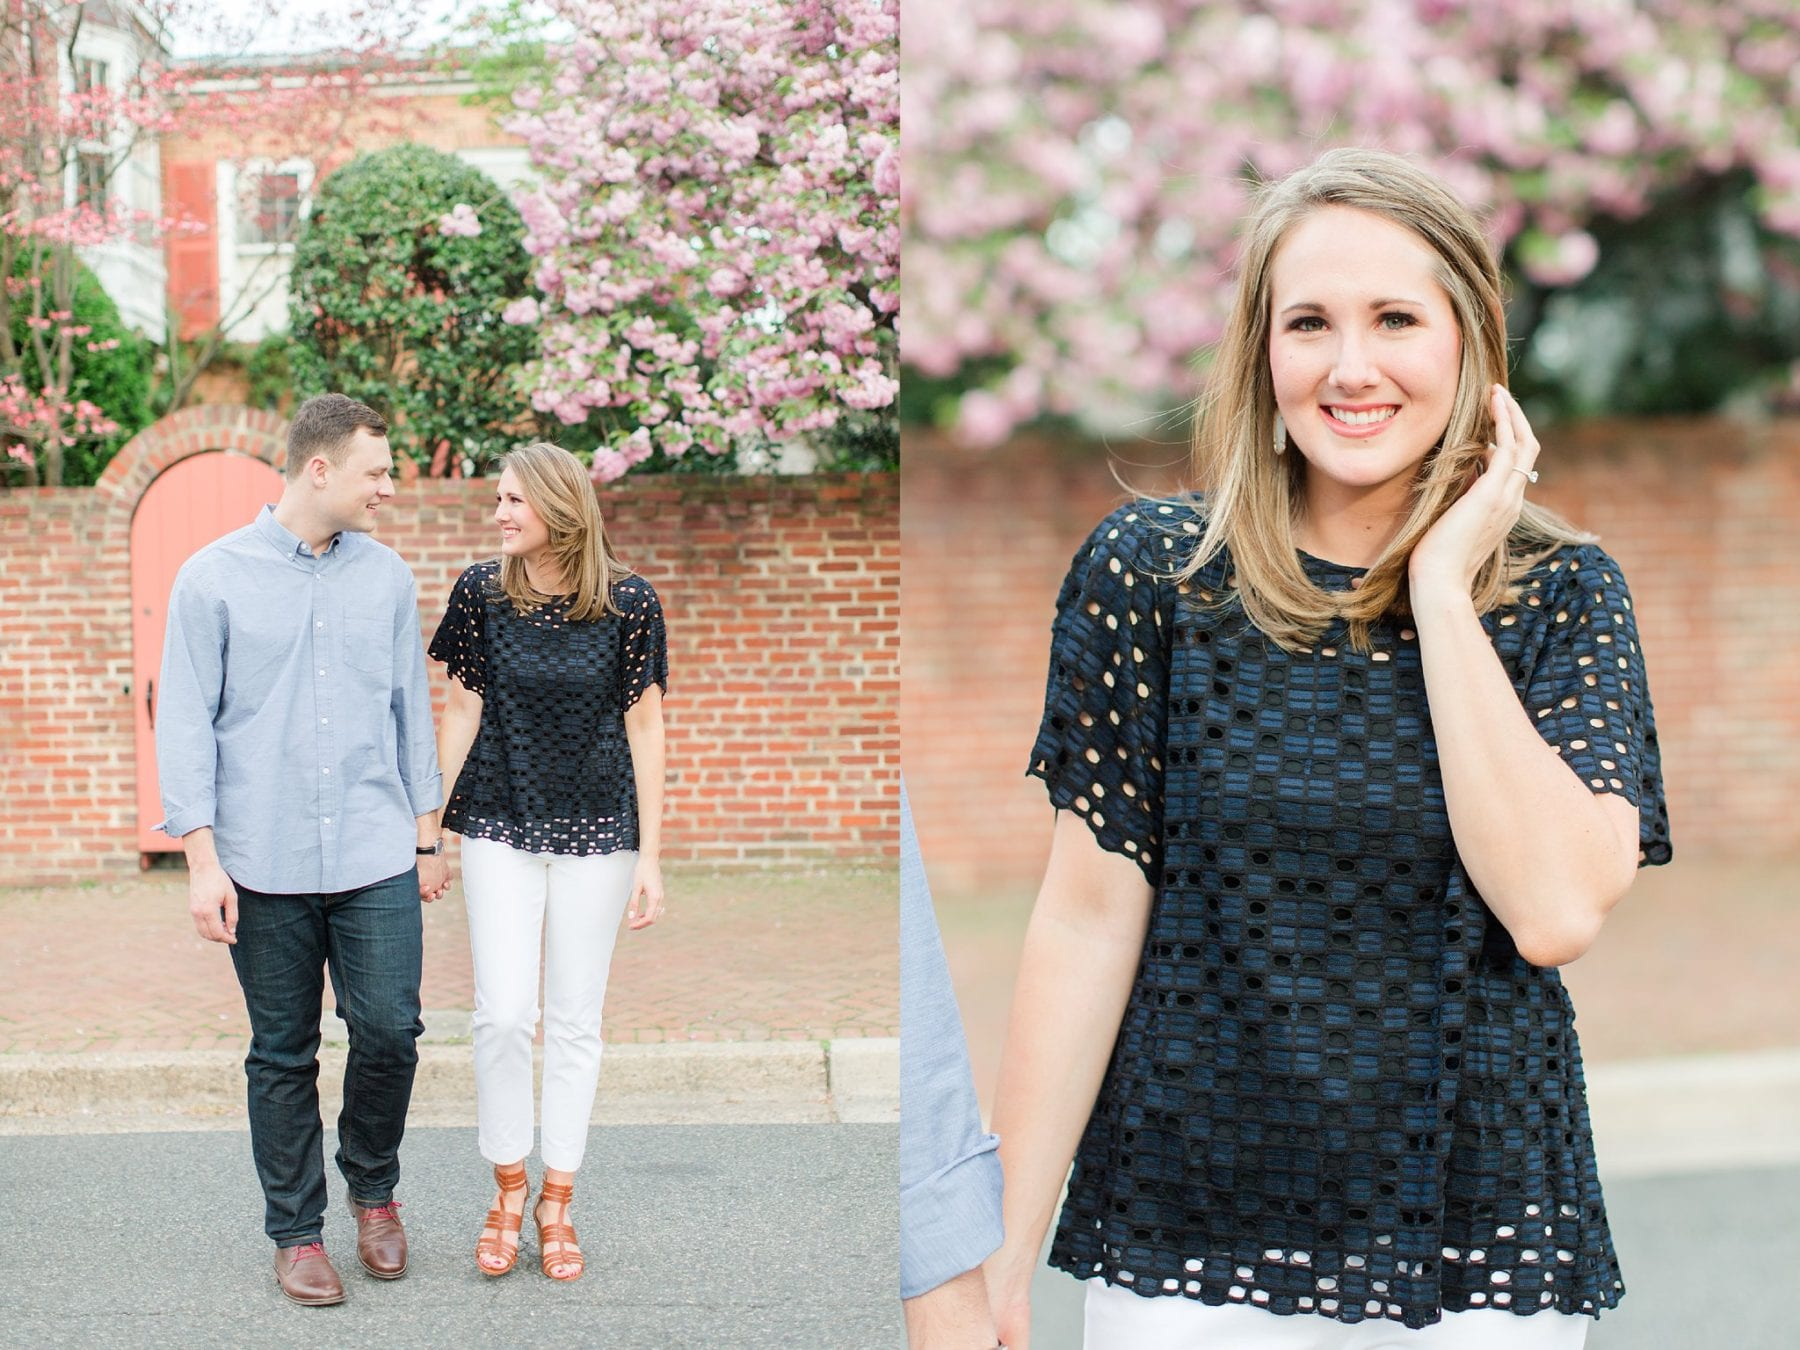 Springtime Old Town Alexandria Engagement Session Matt & Maxie Megan Kelsey Photography-193.jpg